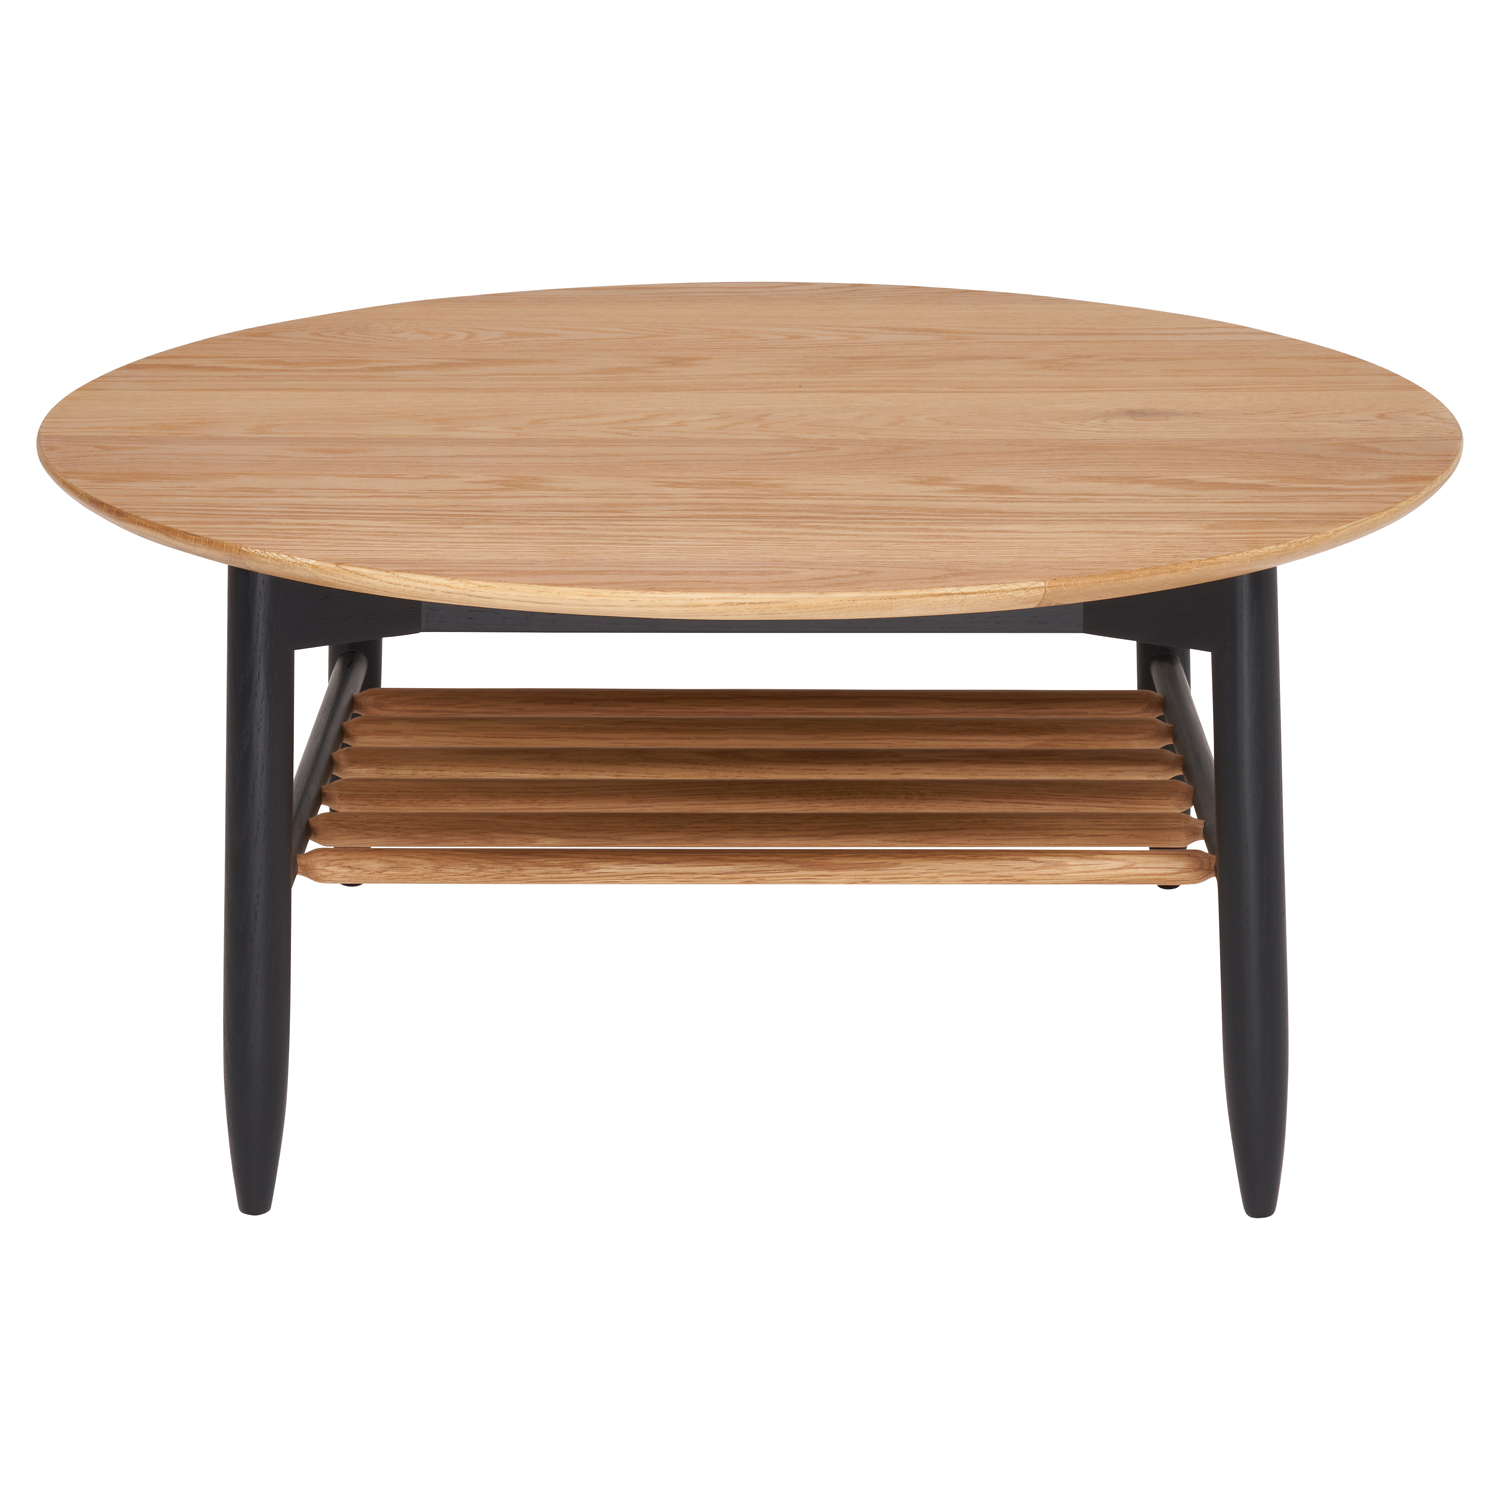 Ercol Monza Round Coffee Table